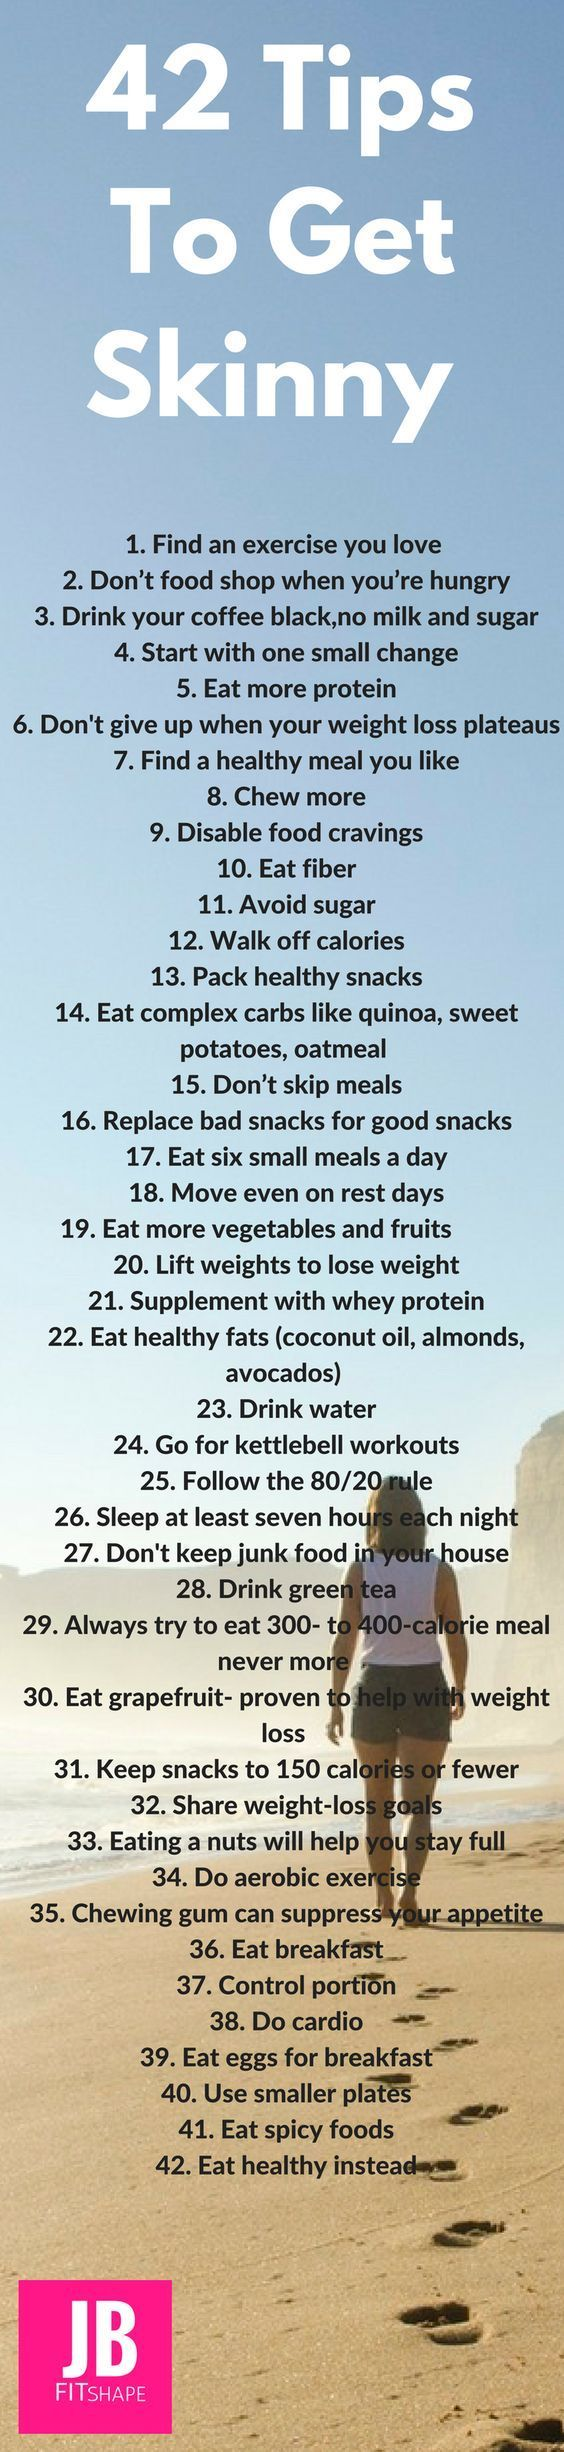 35 weeks pregnant diet plan photo 1